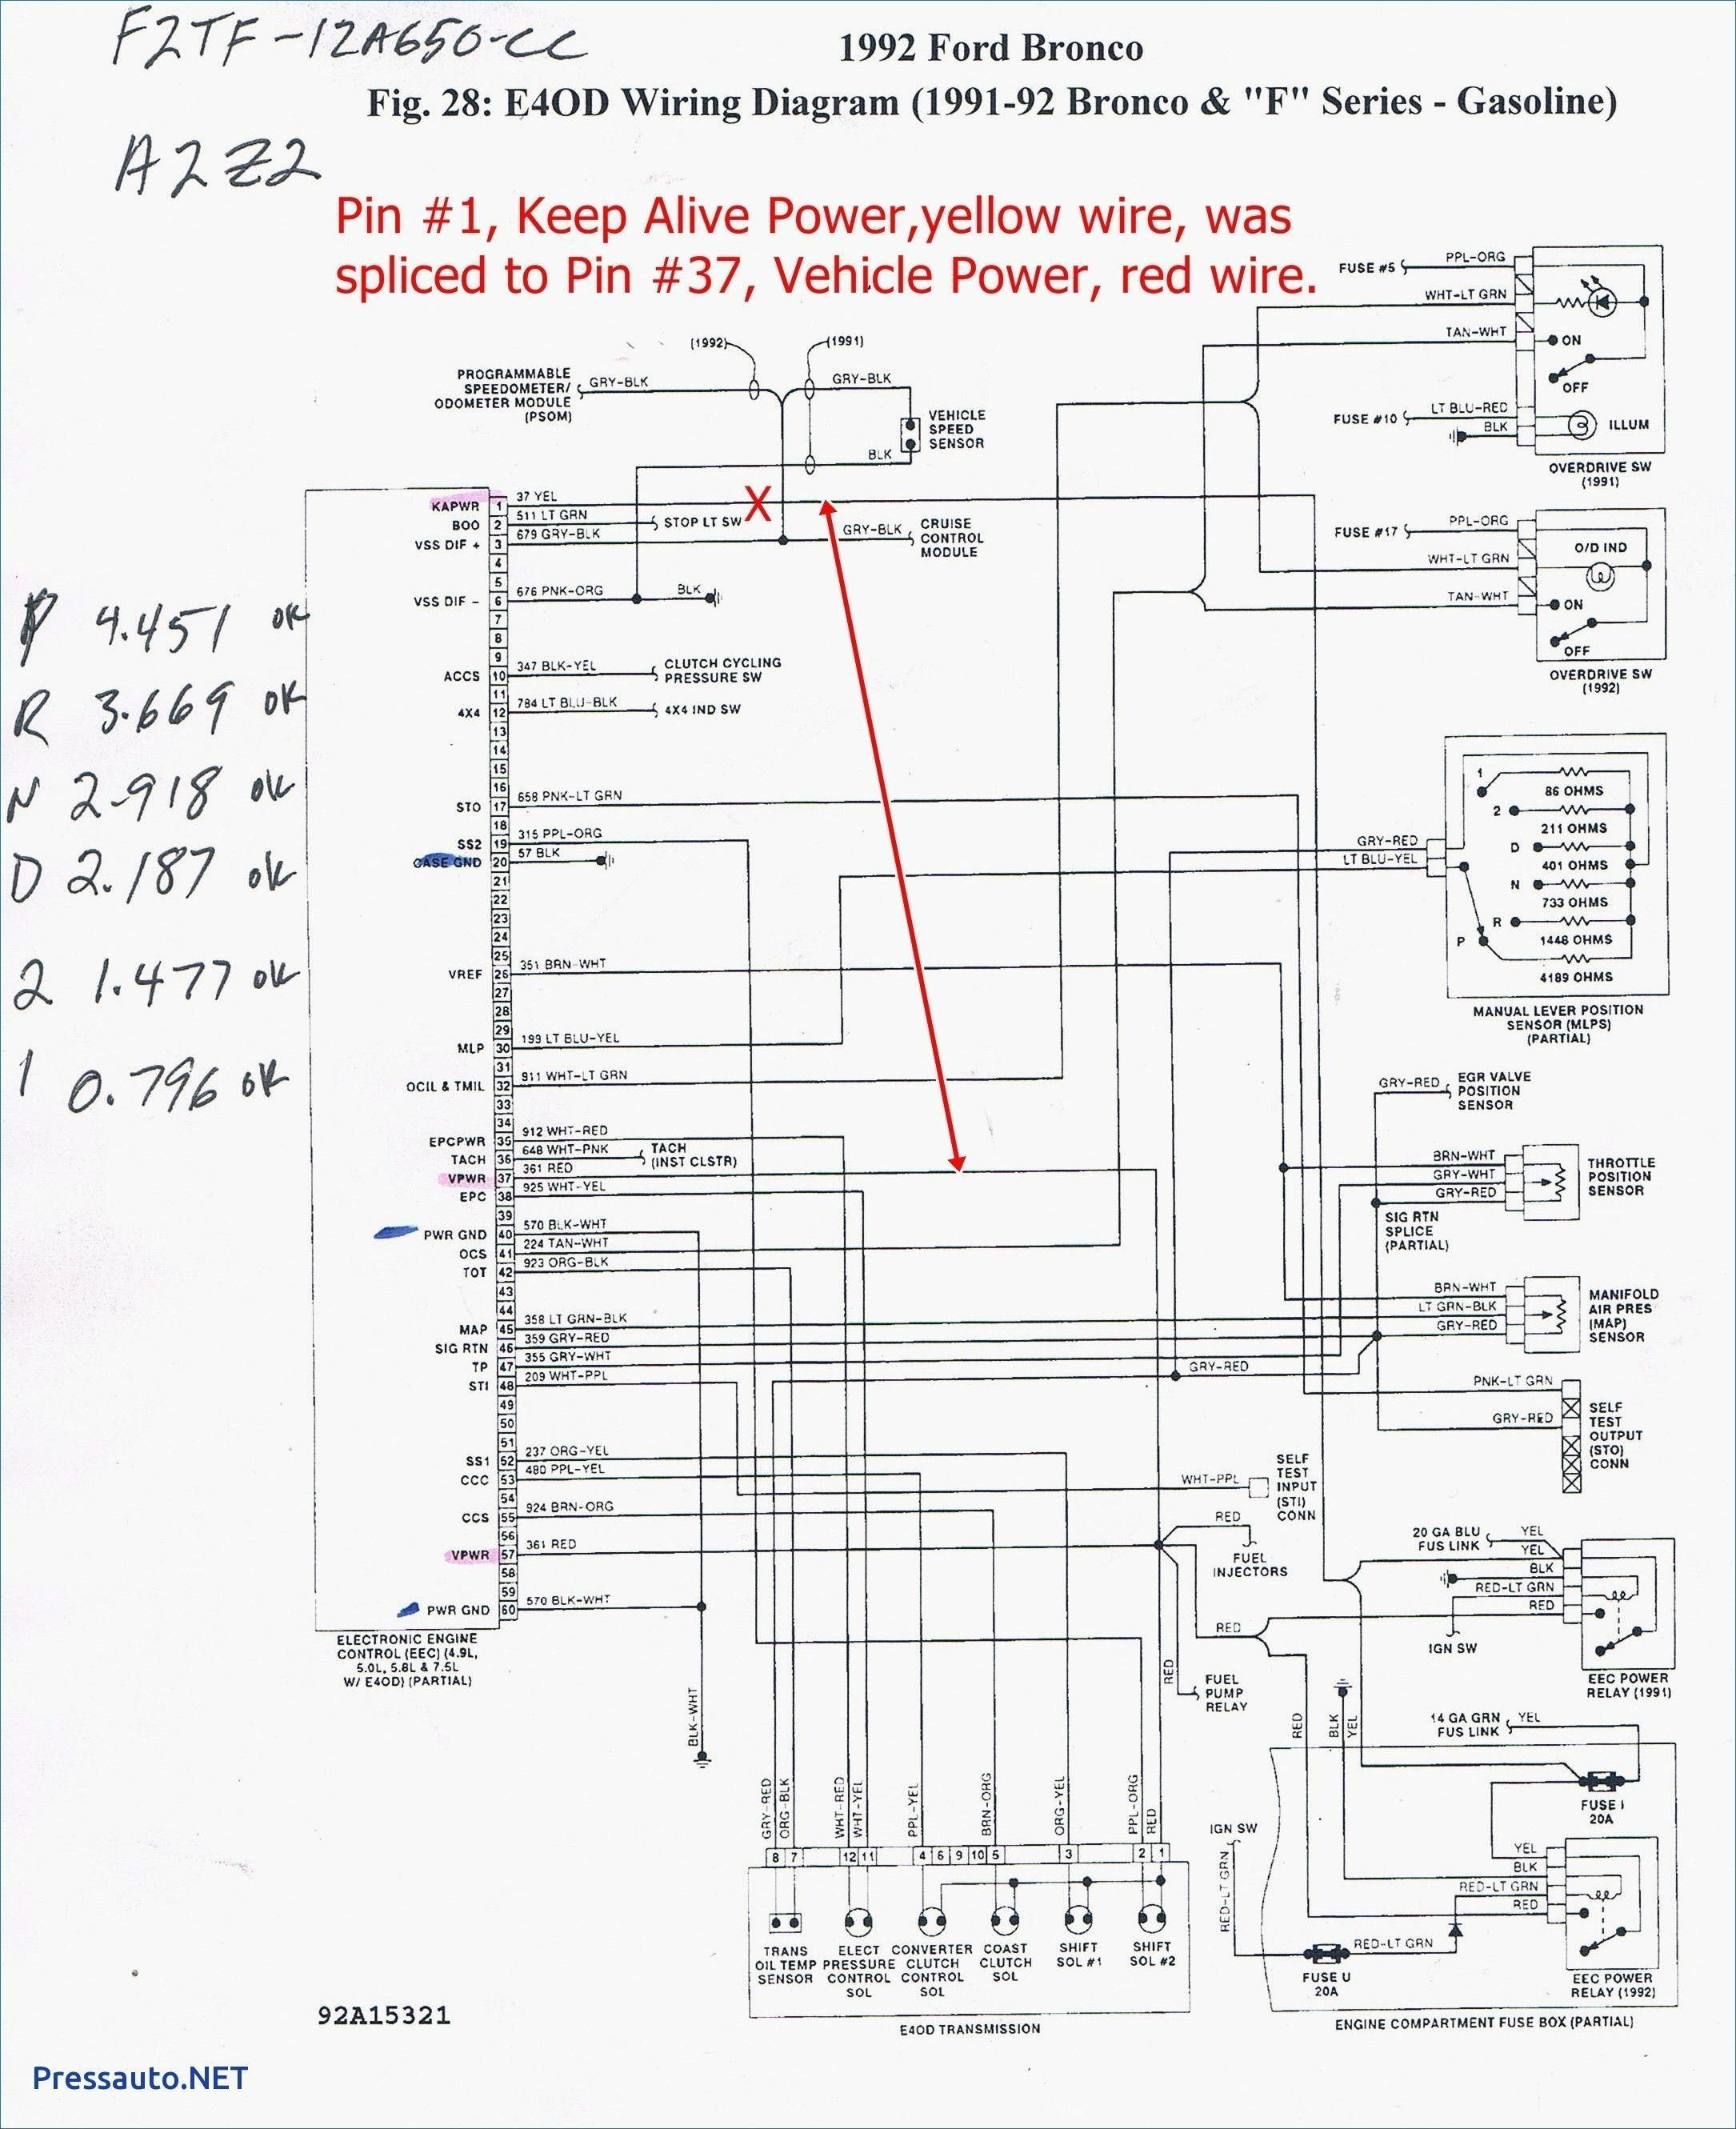 dodge ram 1500 transmission wireing diagram - wiring diagram  close-warehouse-b - close-warehouse-b.pmov2019.it  pmov2019.it